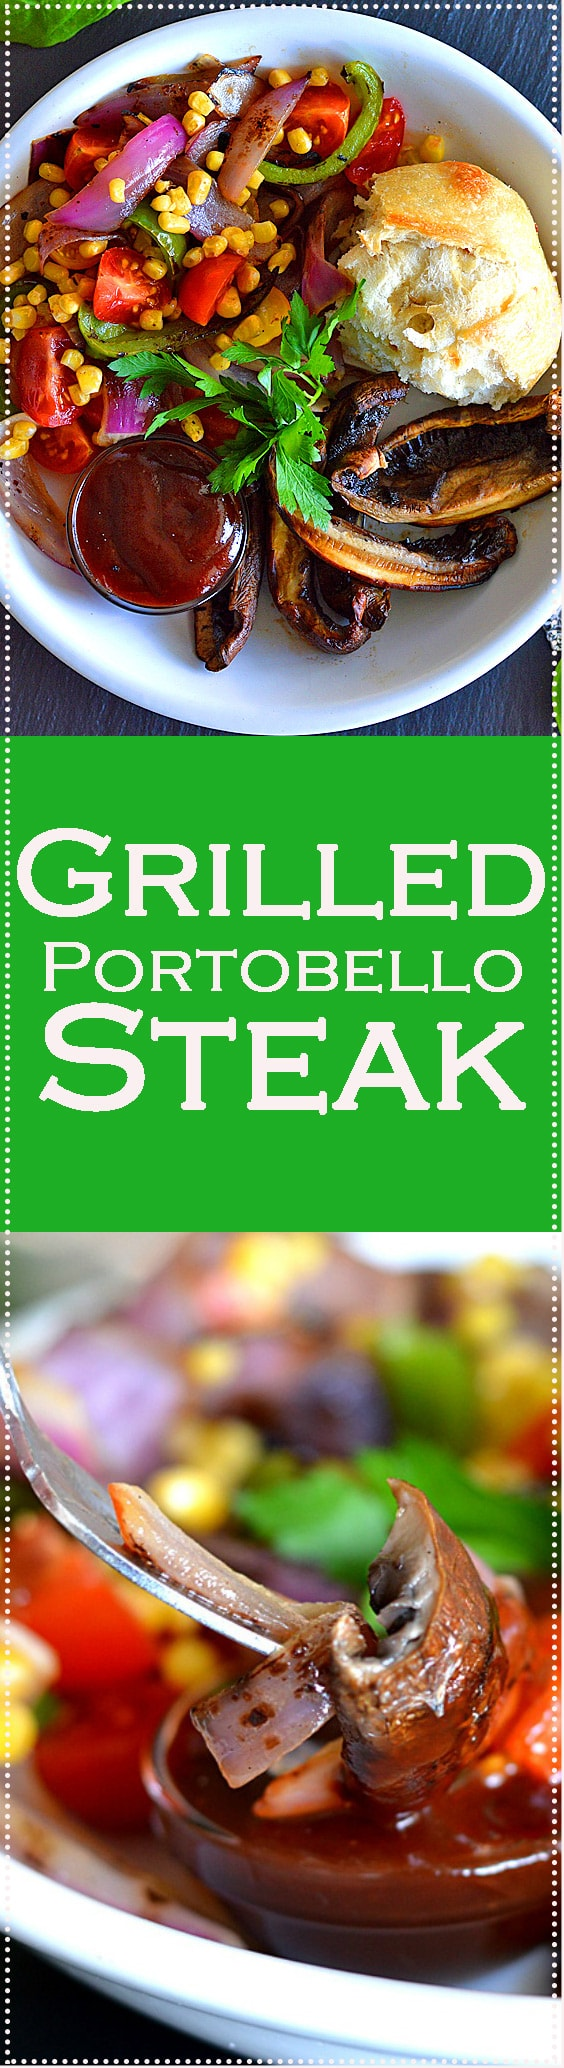 Grilled Portobello Steak